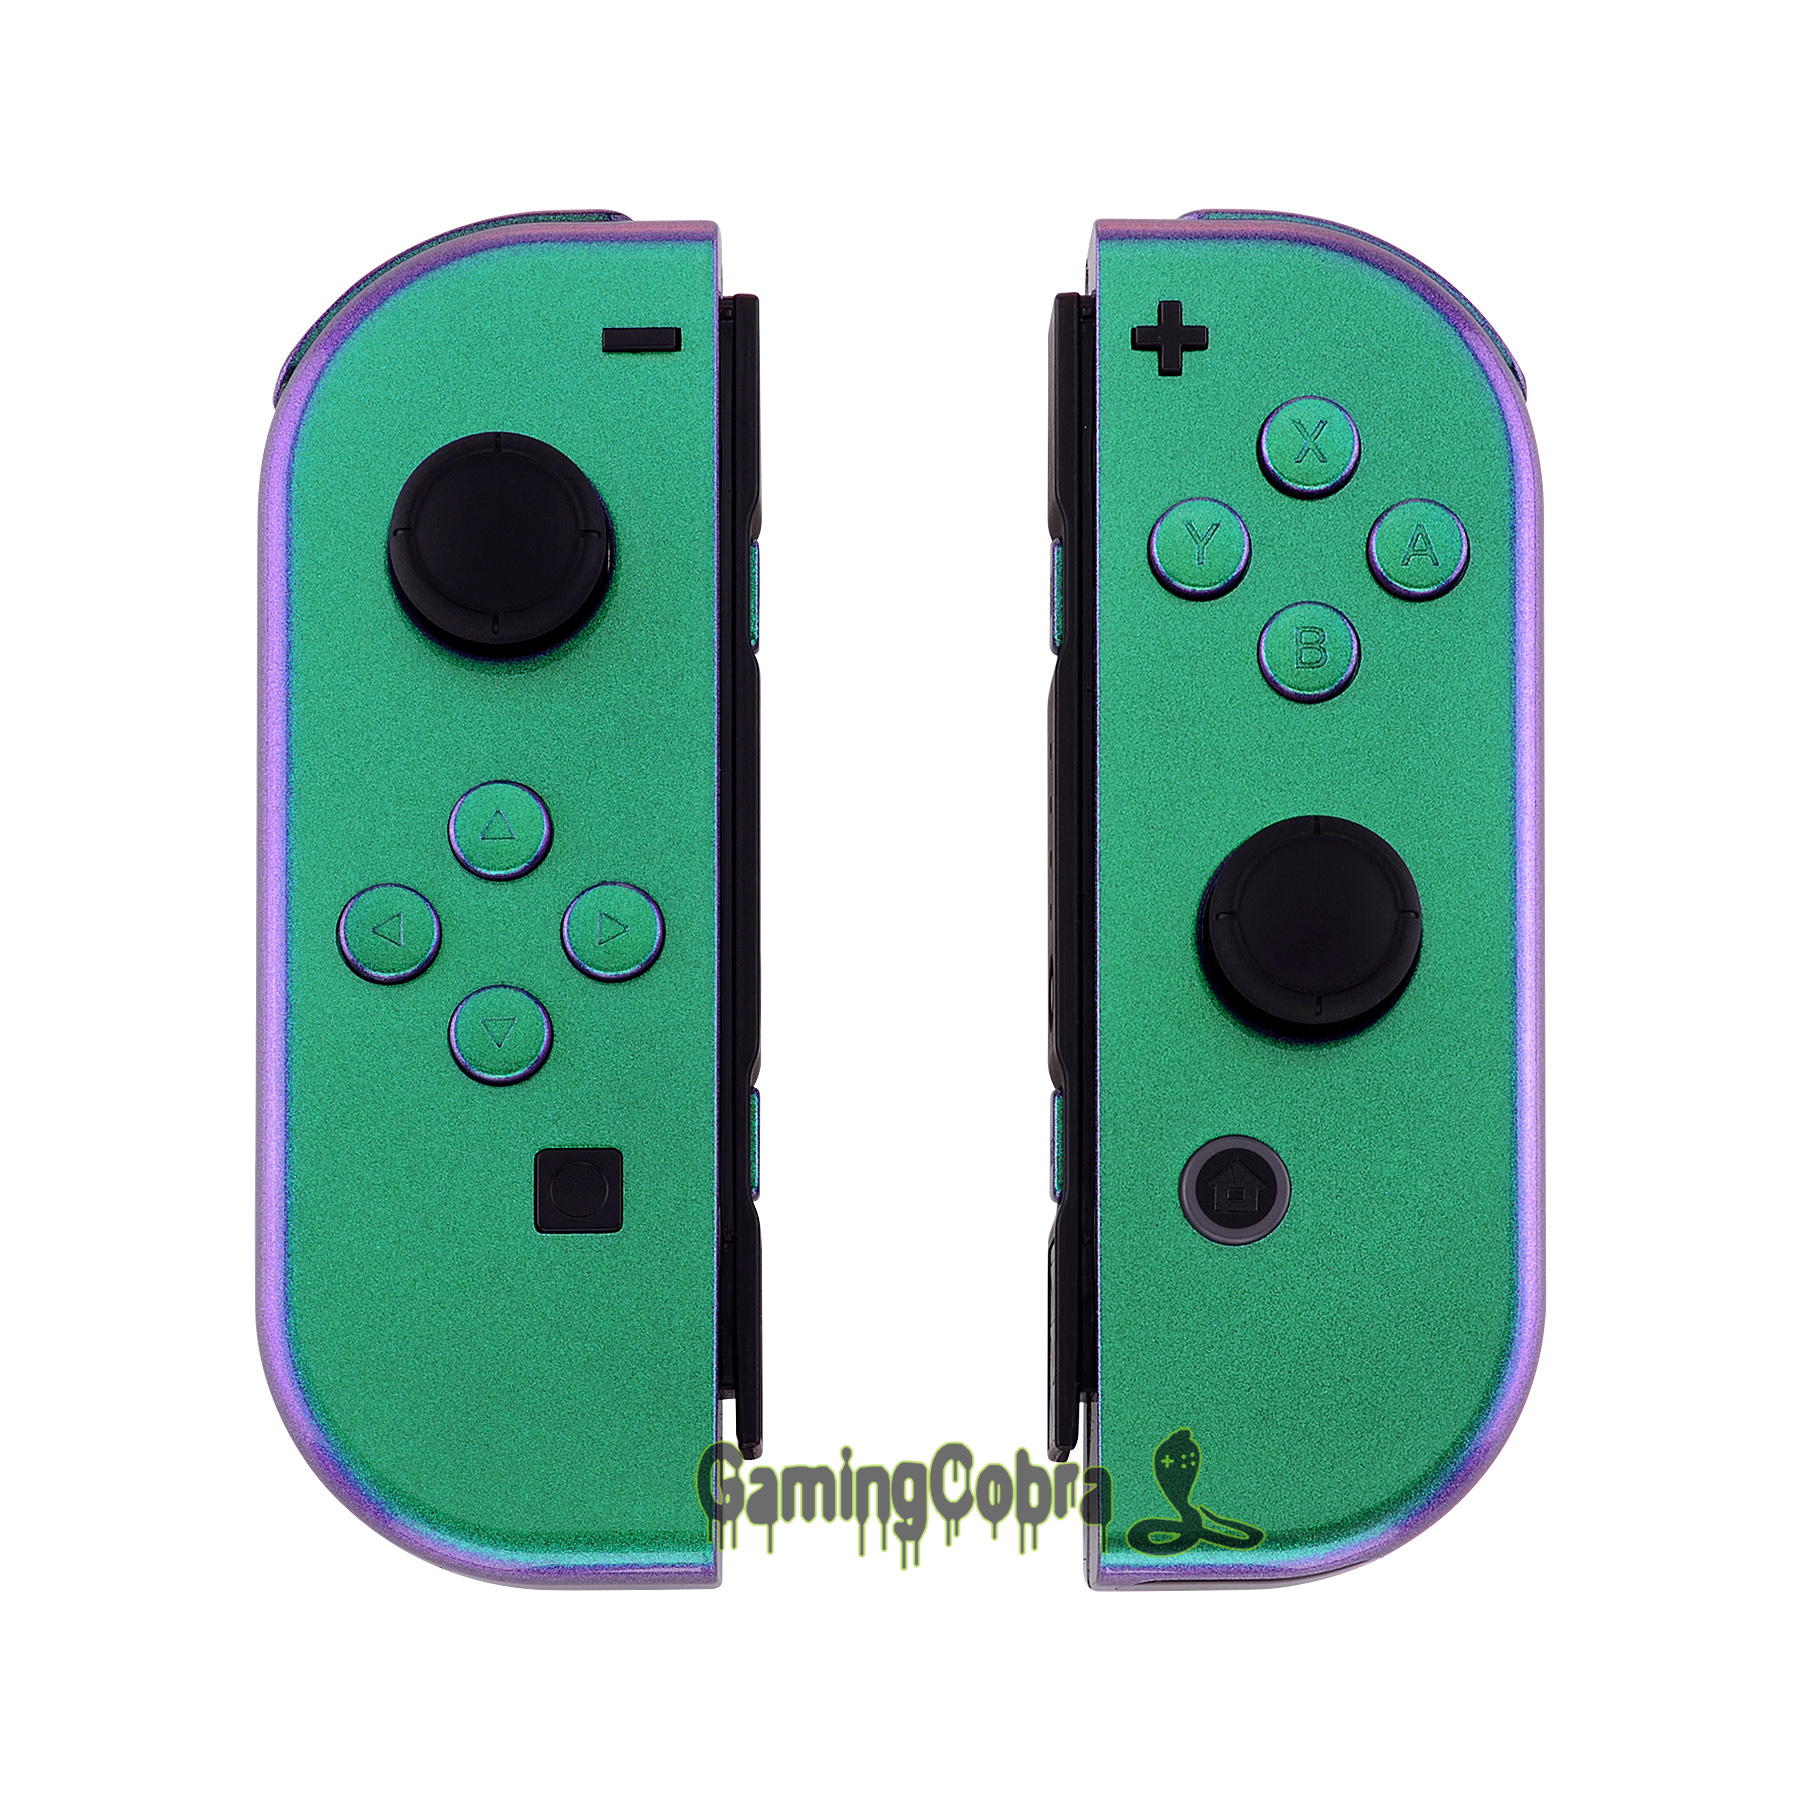 Chameleon Green Purple Joycon Handheld Controller Housing Shell With Full Set Buttons Replacement For Nintendo Switch Joy-Con